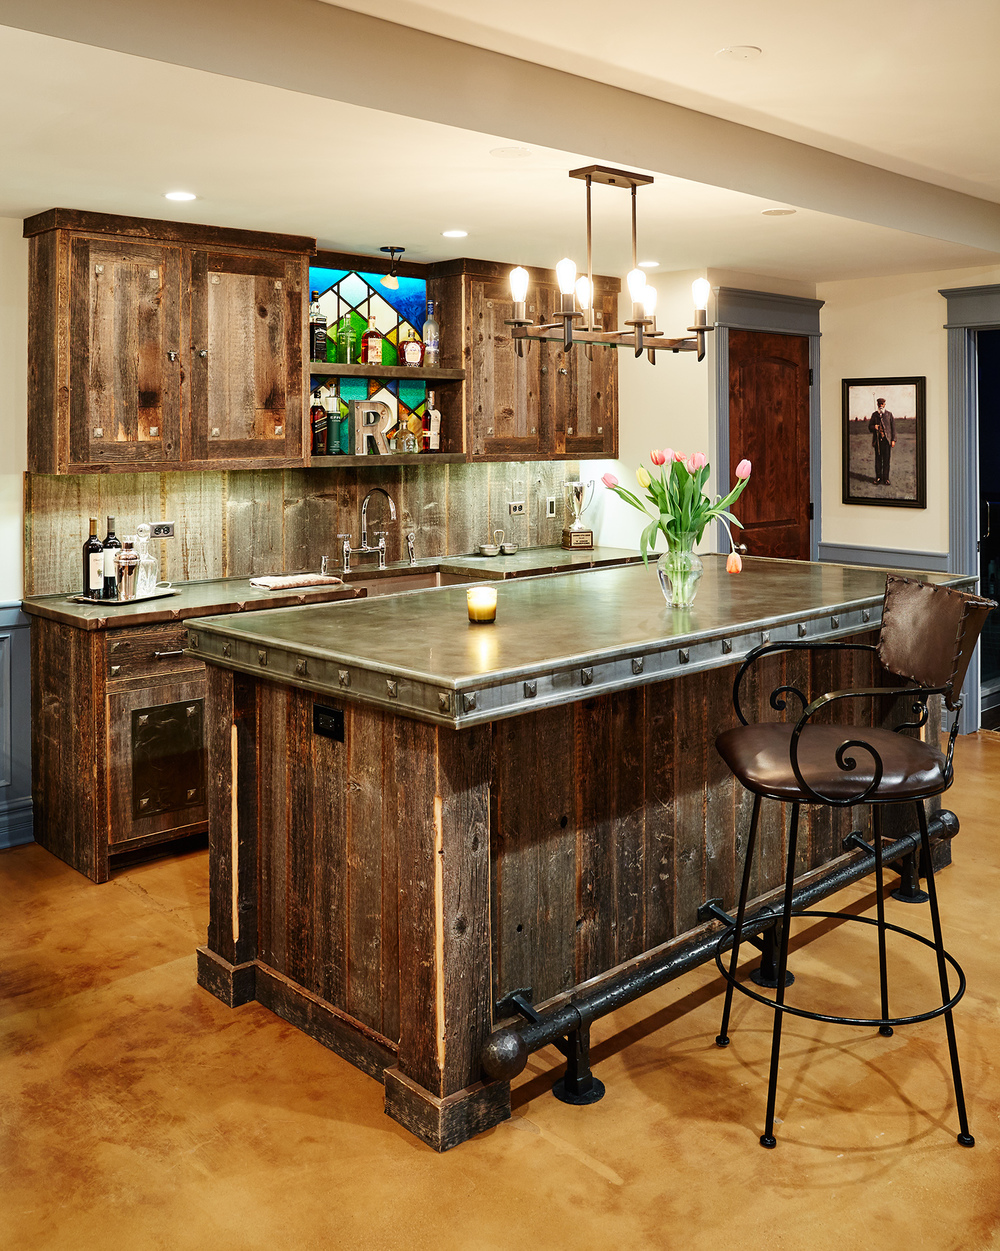 Reclaimed Barn Wood Bar with Zinc Bar Top